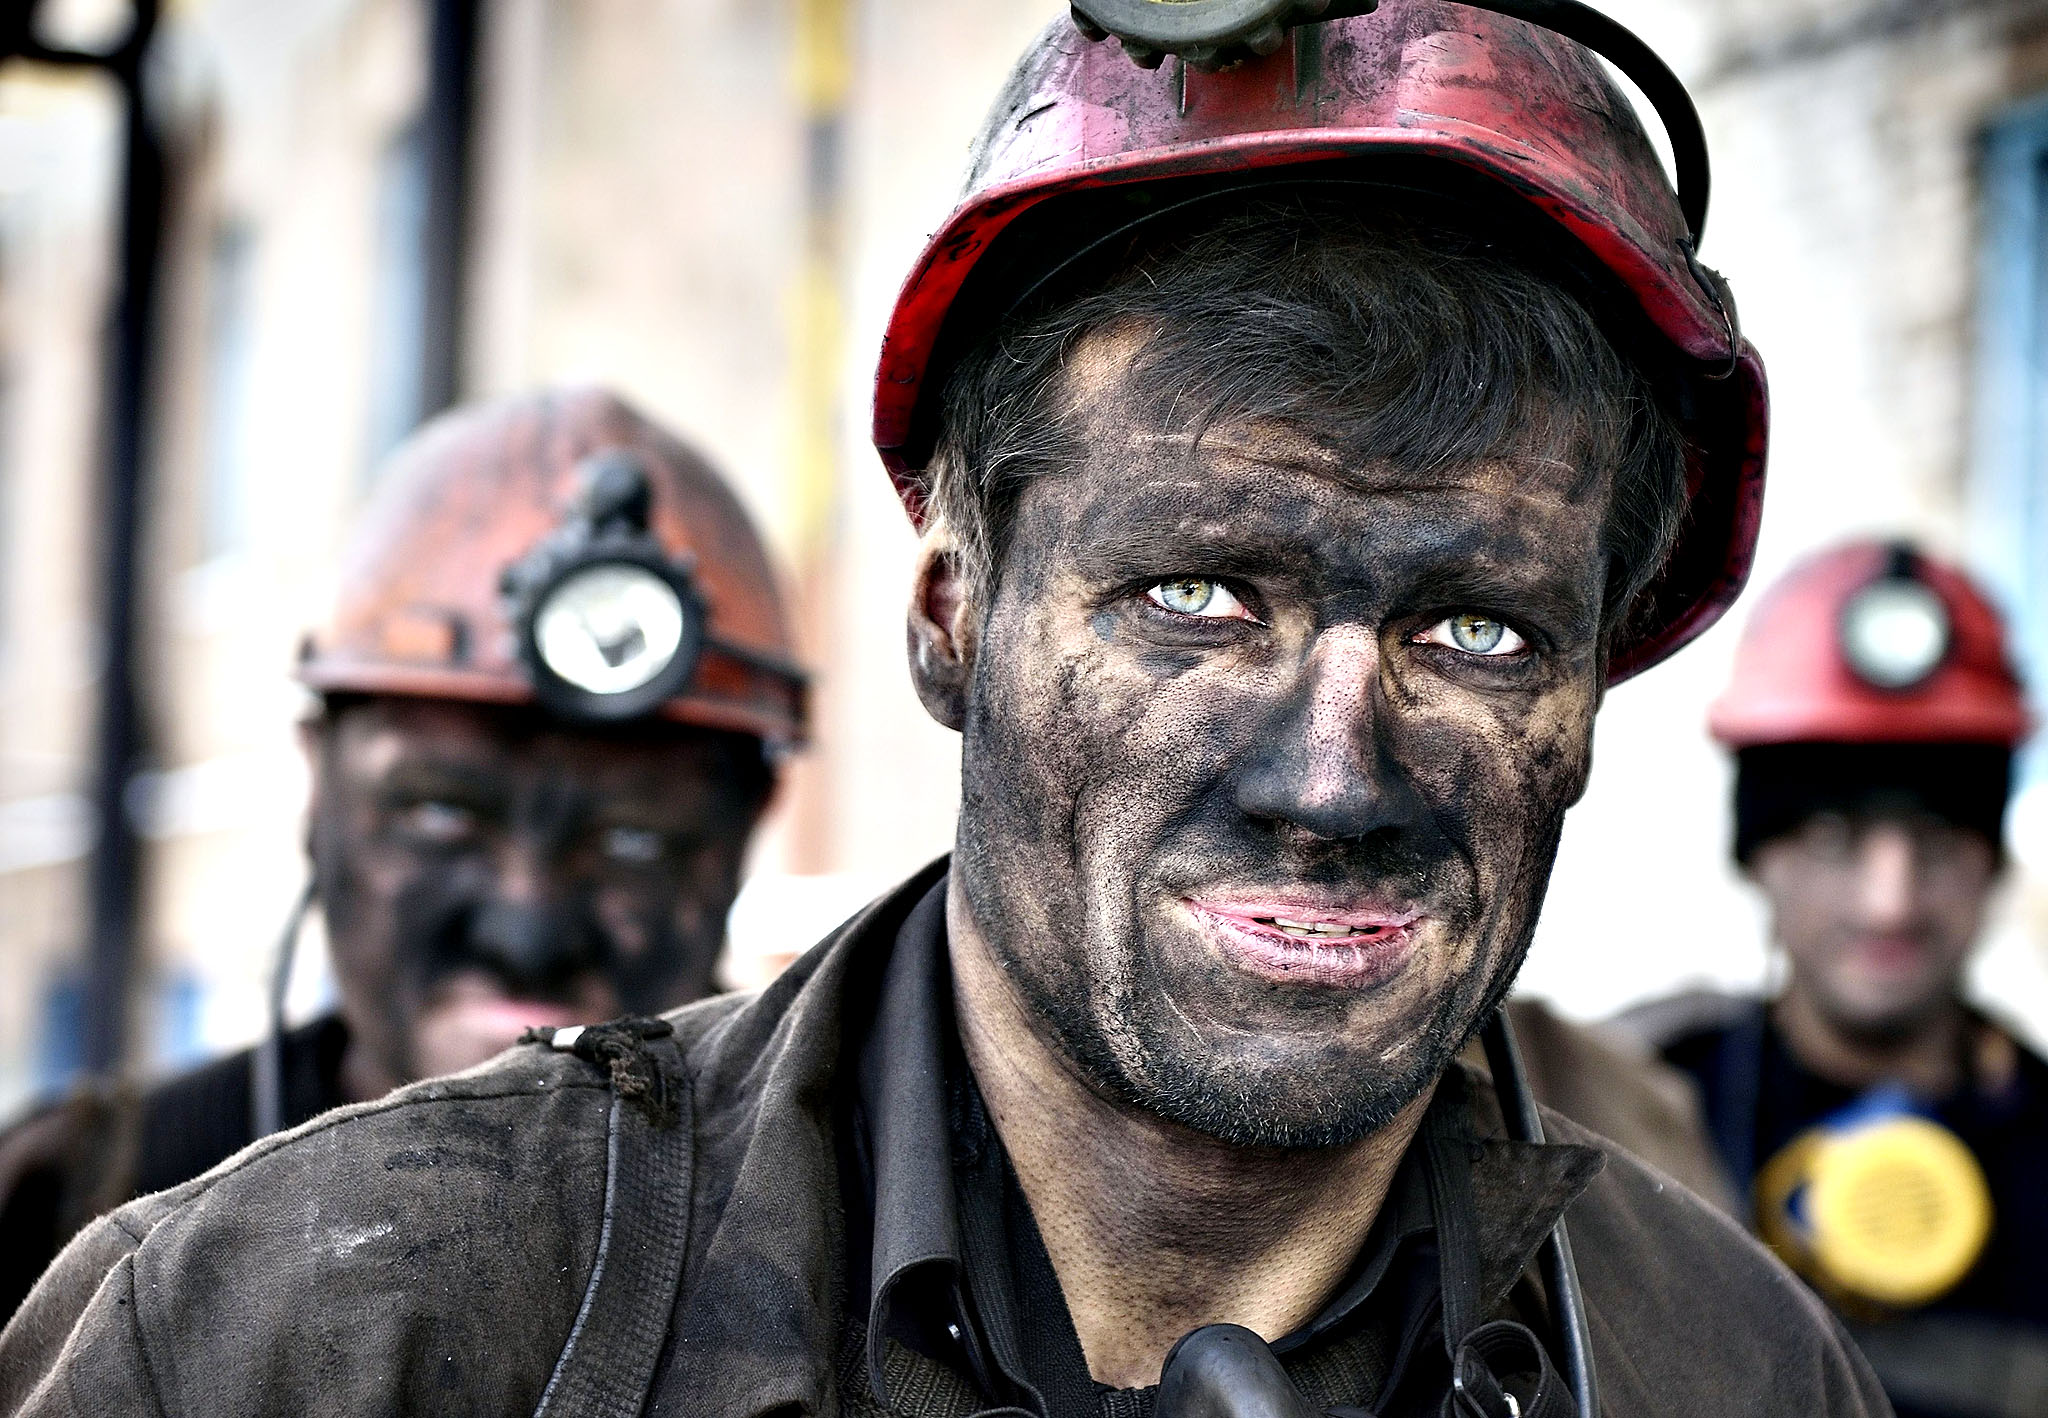 "Miners return from their shift at the Kalinina coal mine in the eastern Ukrainian city of Donetsk, controlled by pro-Russian rebels on December 1, 2014. Official statistics shows the country needs a million tonnes of anthracite coal per month to feed its power stations. By November 24, only 1.8 million tonnes were left in the reserves. Russia announced it was stopping coal supplies to Ukraine last week, claiming ""force majeure"" but offering no explanation."